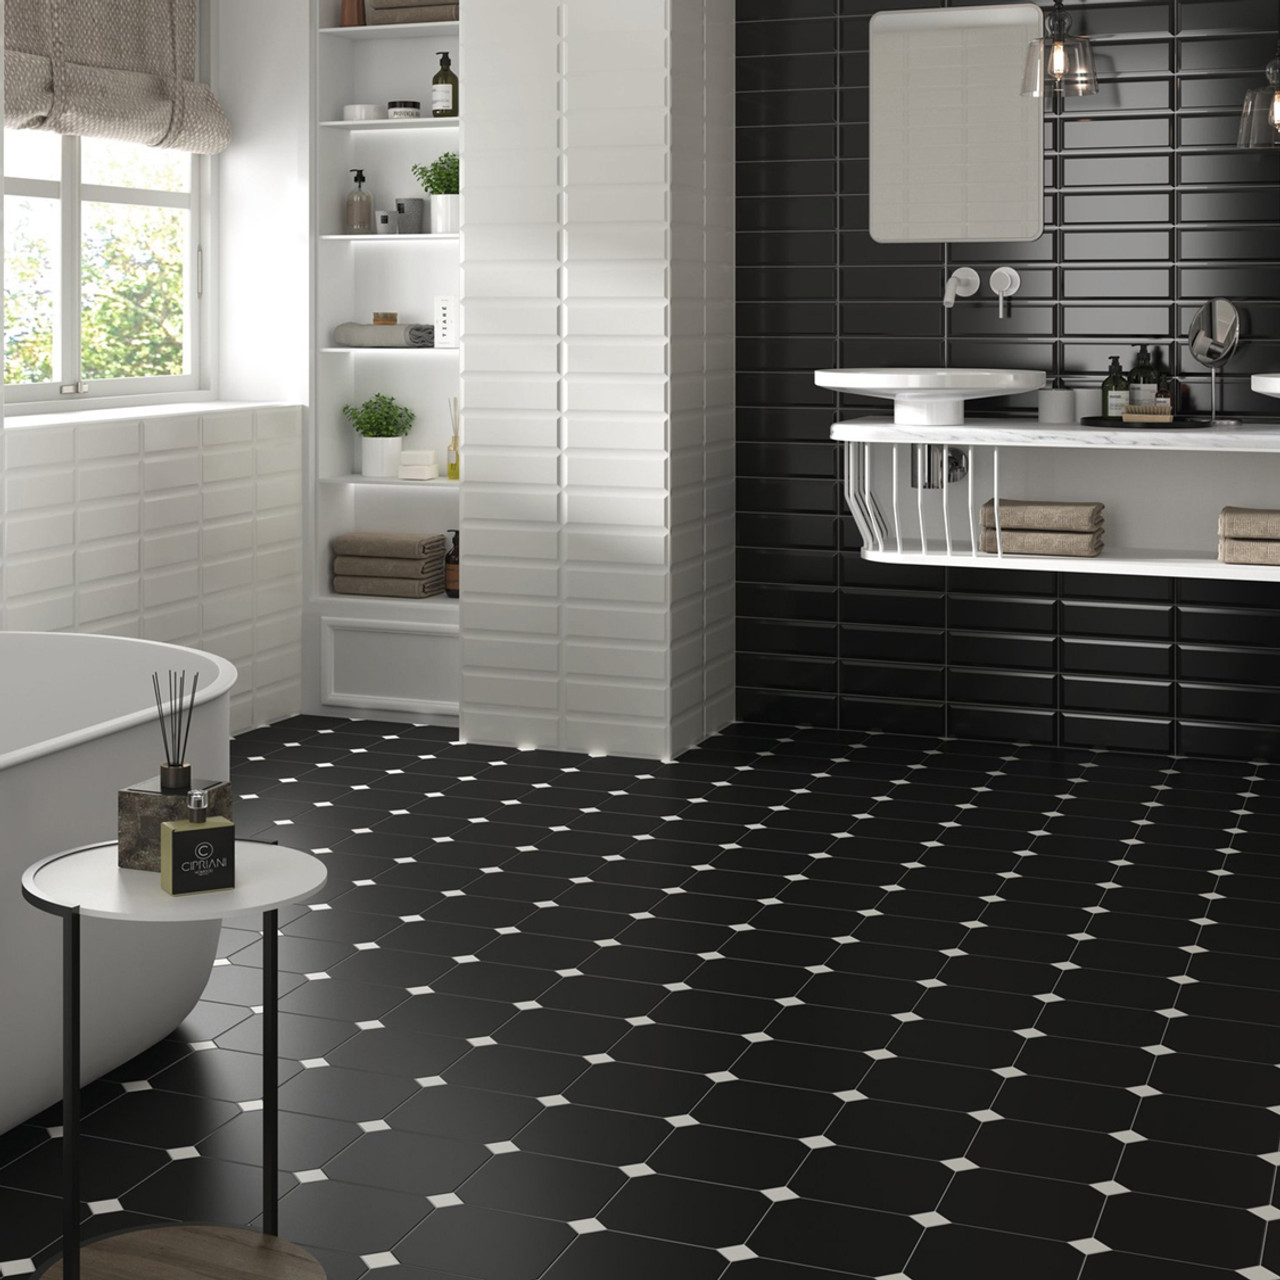 https www tile clearance co uk eight collection black 20cm x 20cm octagonal tiles and white 3 8cm x 3 8cm taco 58 sqm